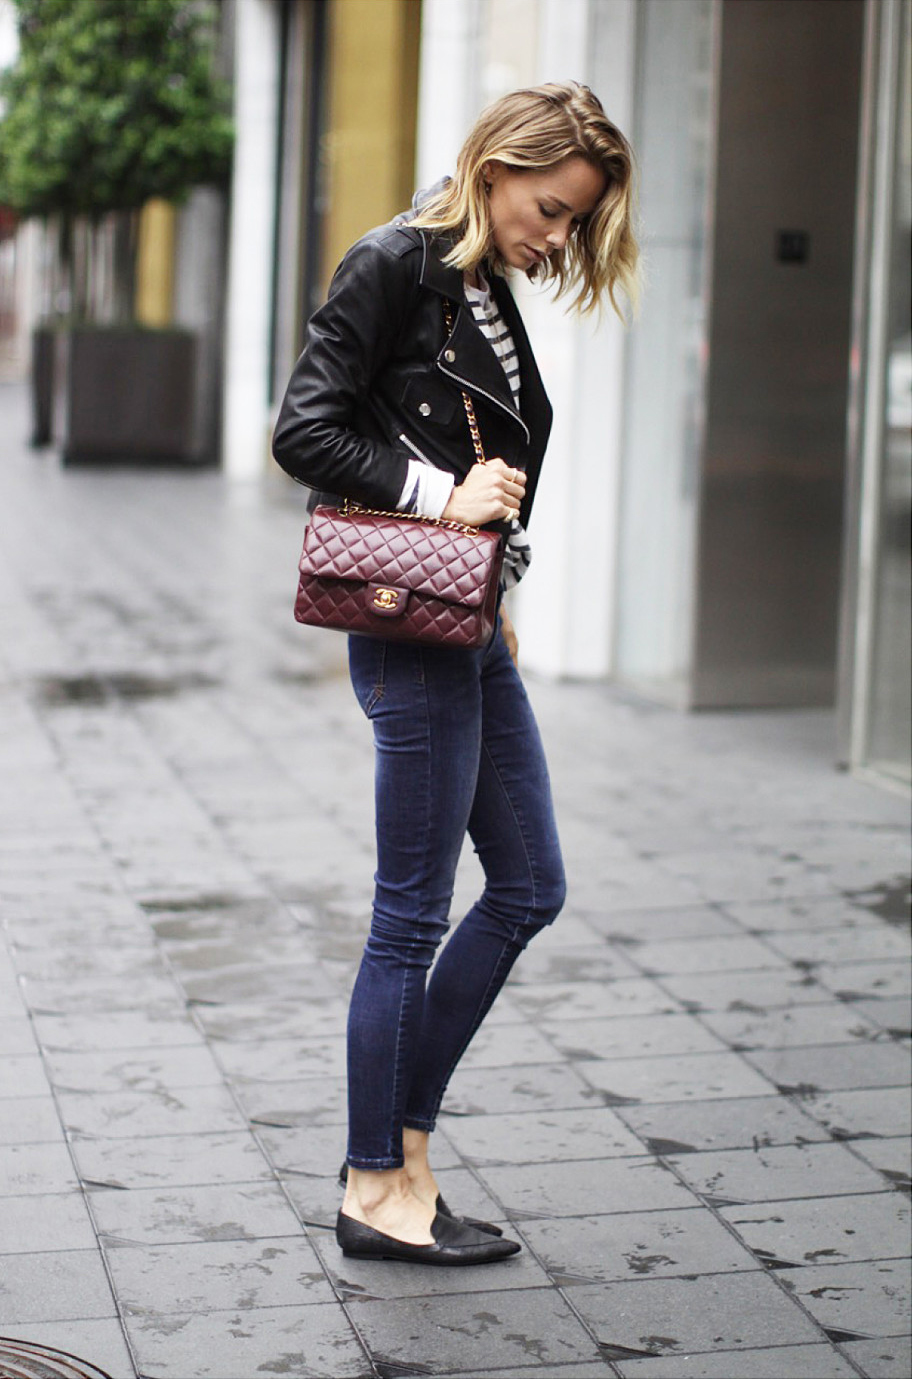 Anine Bing Is Wearing Jeans Black Cropped Leather Jacket Loafers And